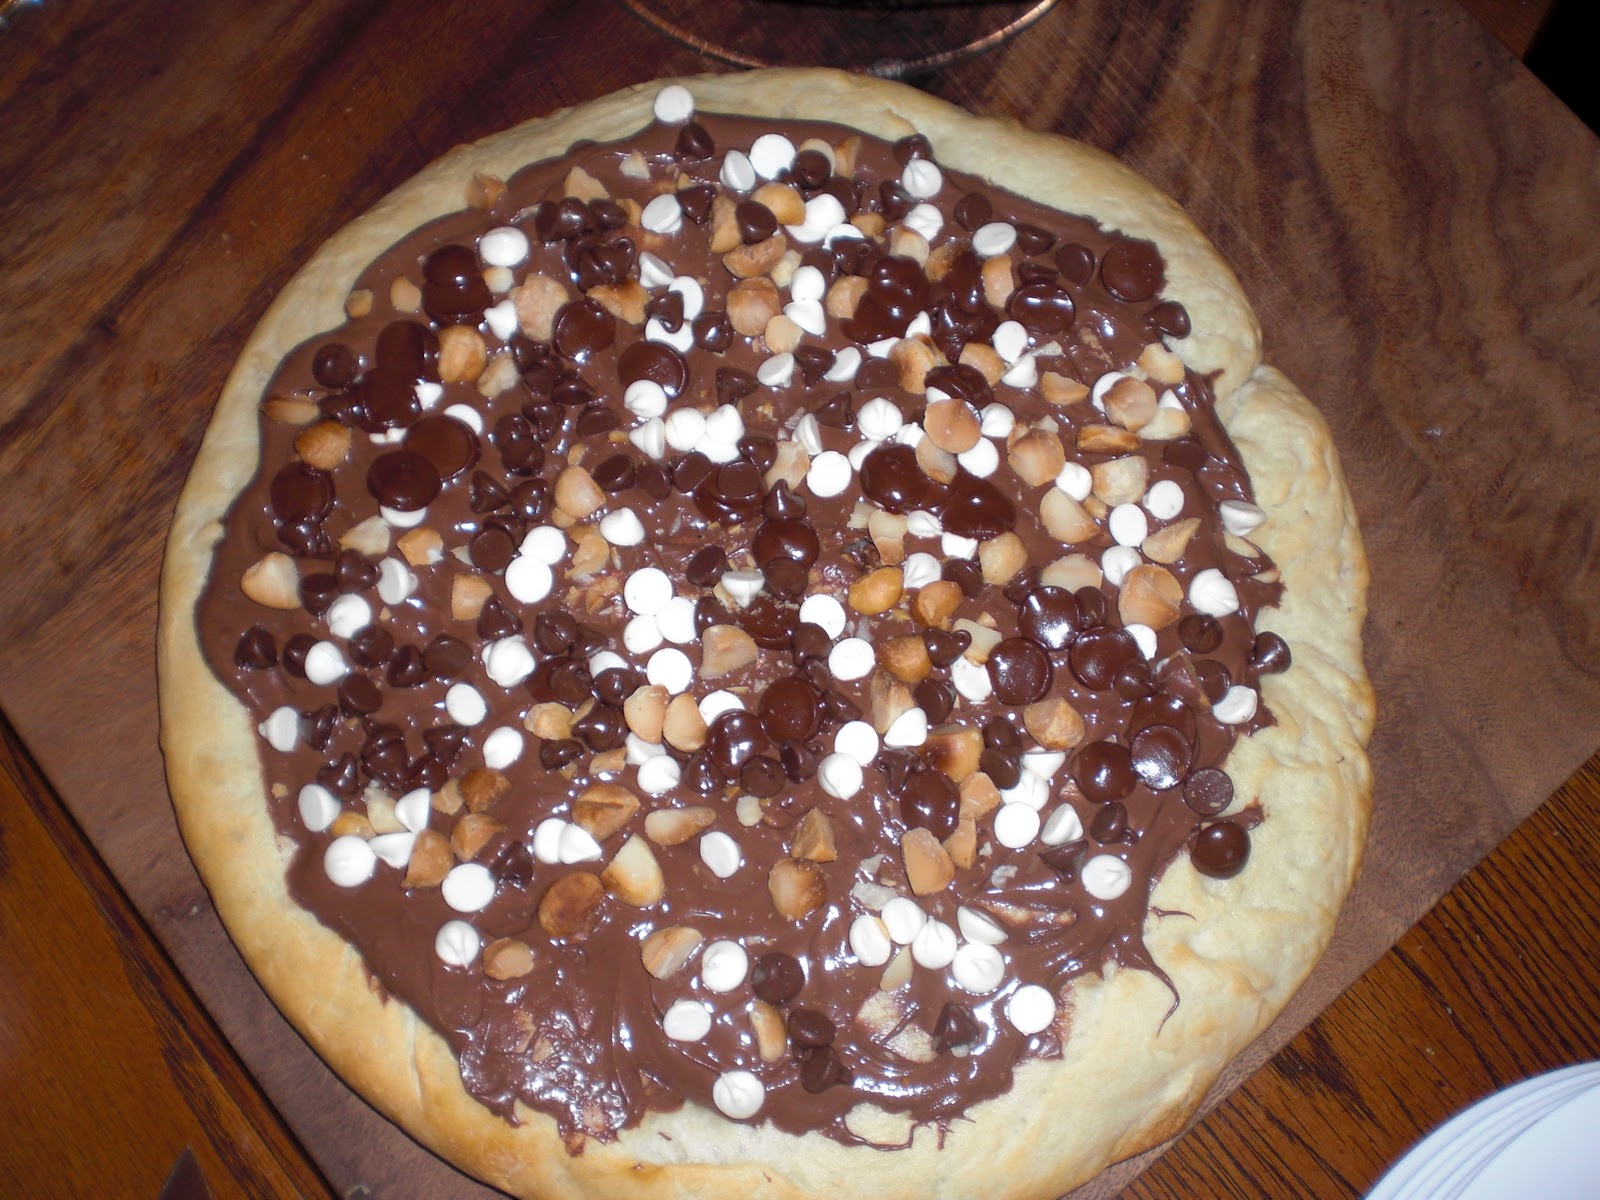 Pizza+Chocolate+Pizza+with+Nutella+Trio+of+Chocolates+and+Macadamia ...